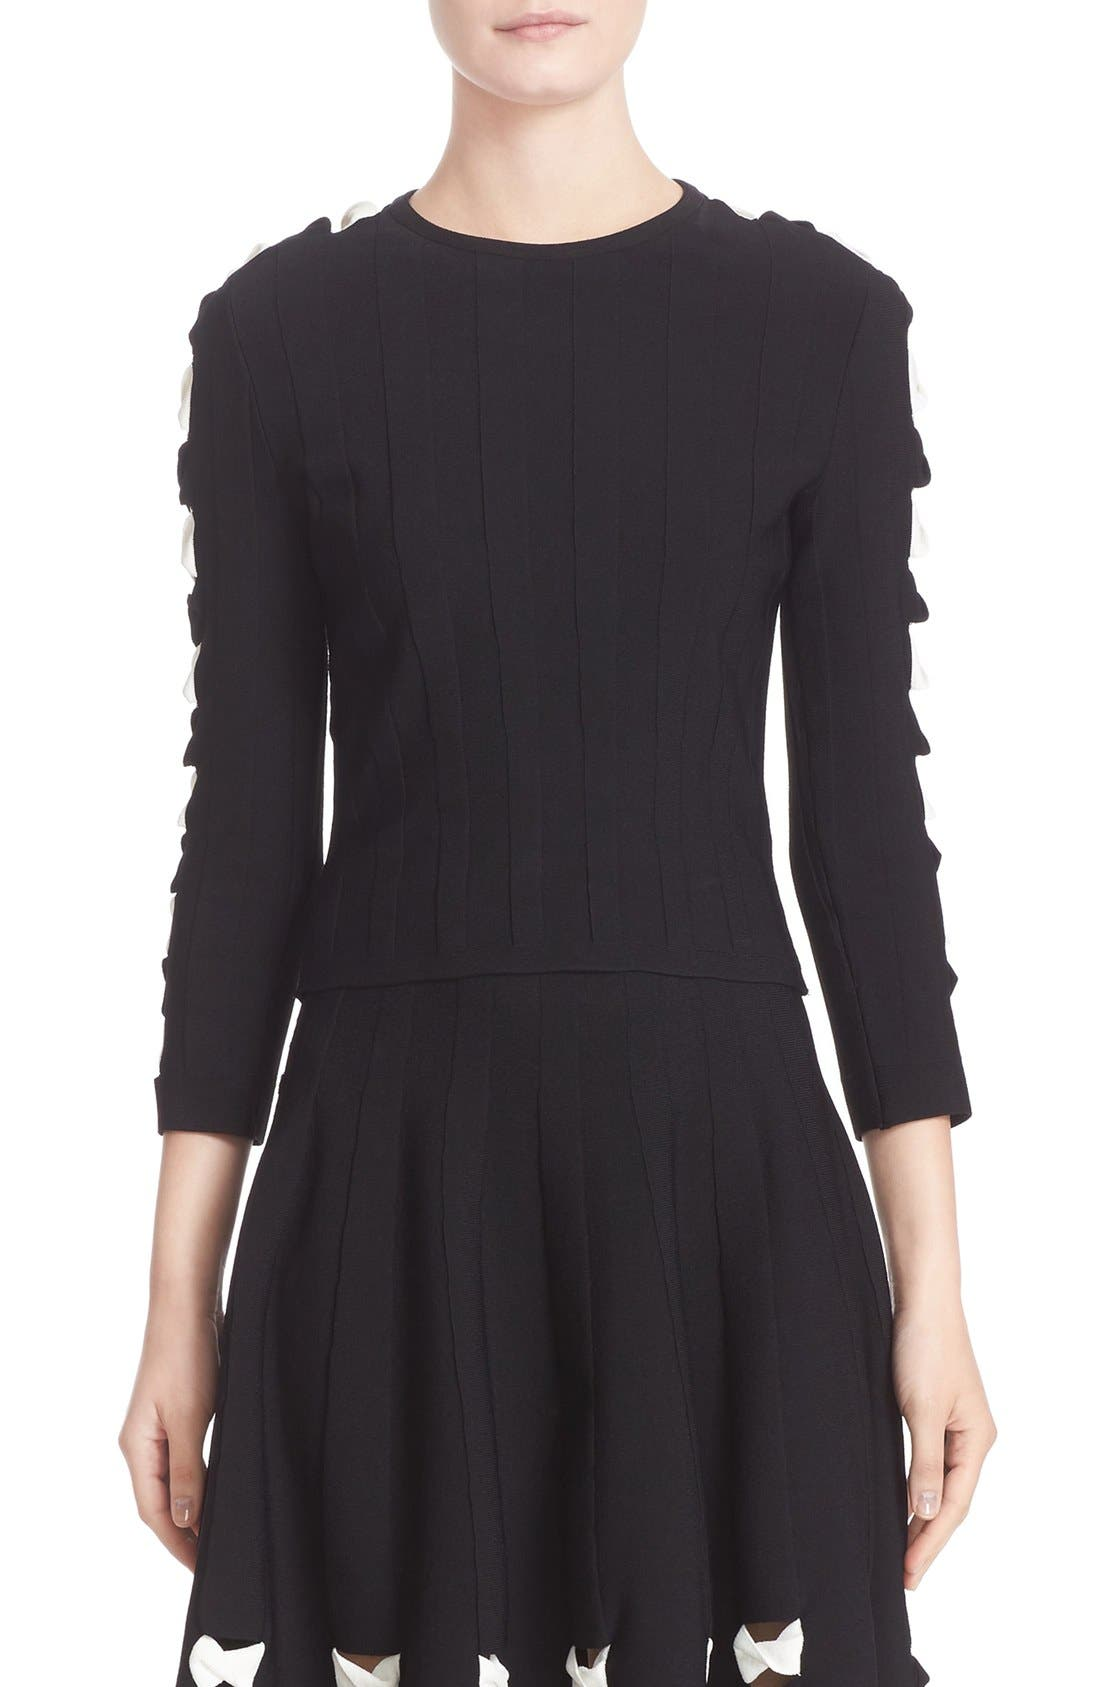 Twisted Cutout Knit Top,                         Main,                         color, Black/ Ivory